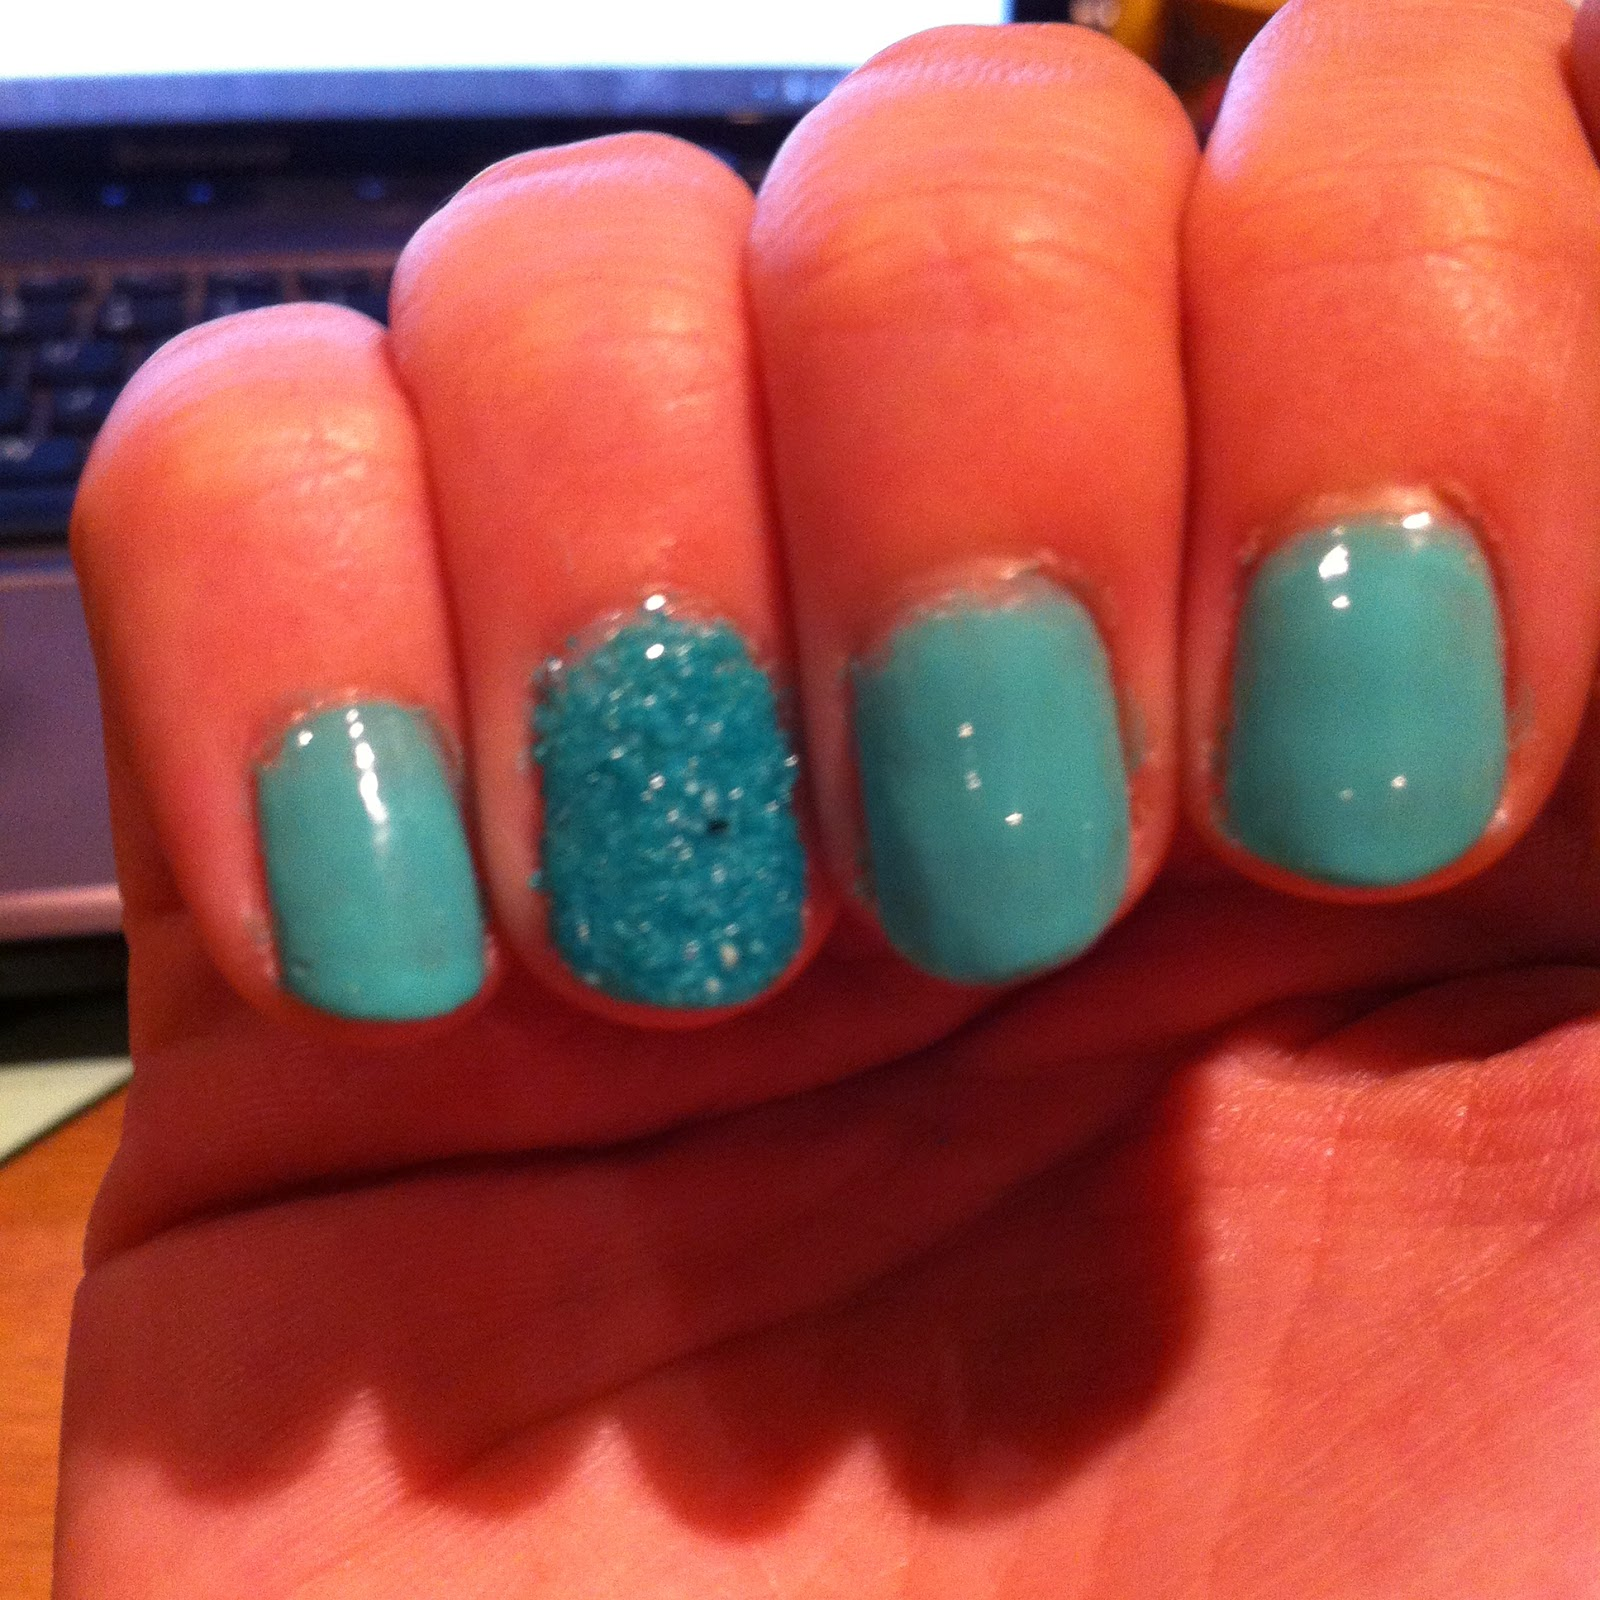 Pretty Nail Polish Poundland Review Sugar Glaze